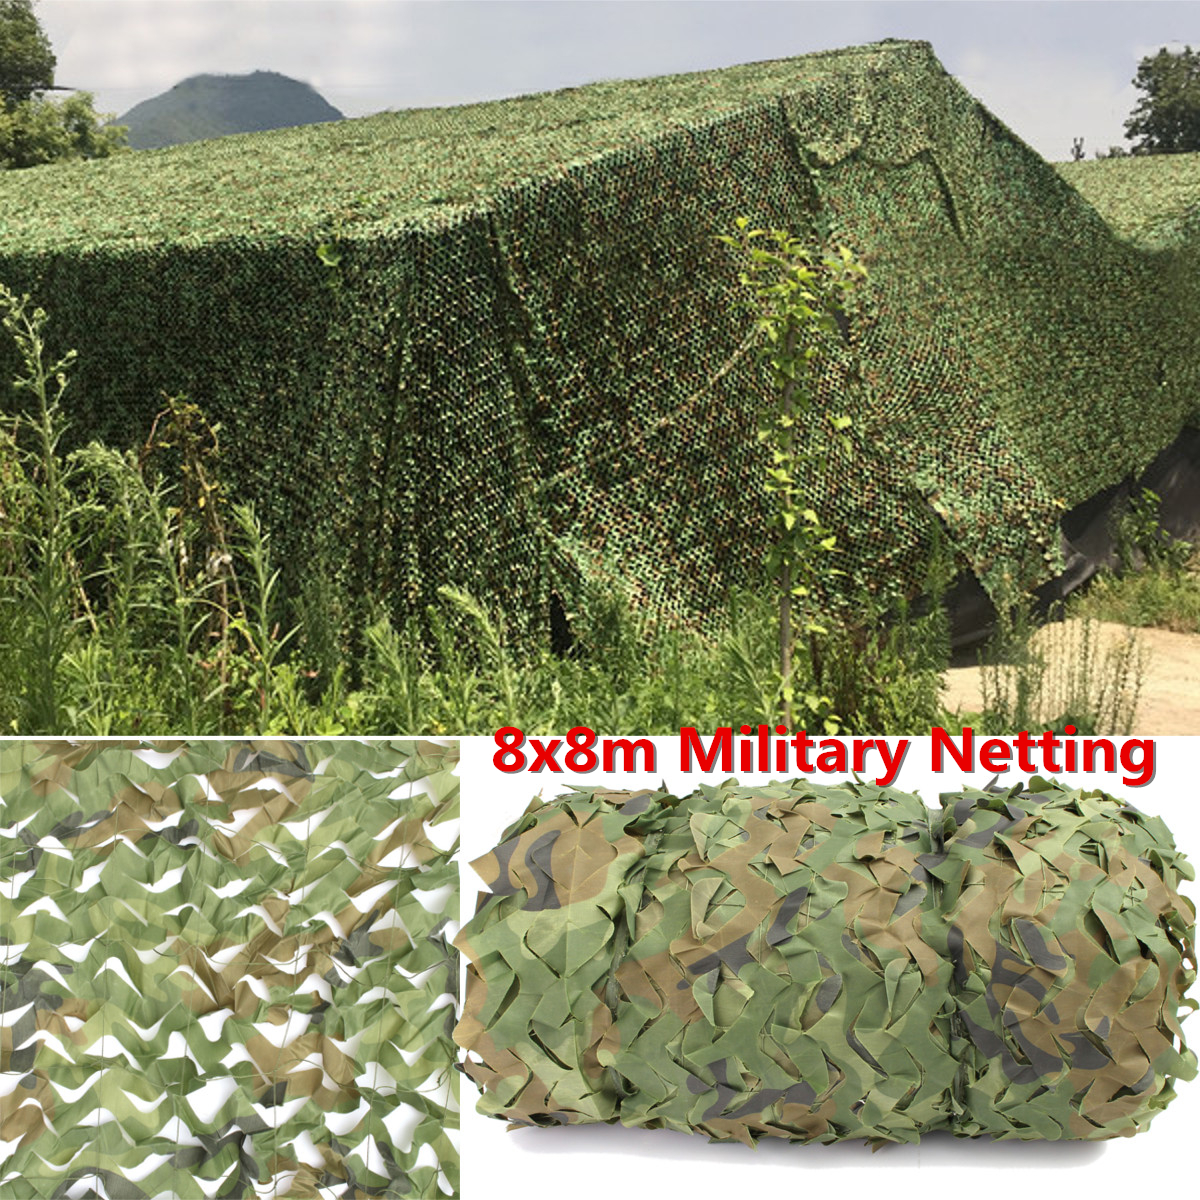 8MX8M Woodland Camouflage Netting Military Army Camo Hunting Hide Camp Cover Net Outdoor Camping Sun Shelter 4mx2m 5mx2m hunting military camouflage nets woodland army camo netting camping sun sheltertent shade sun shelter